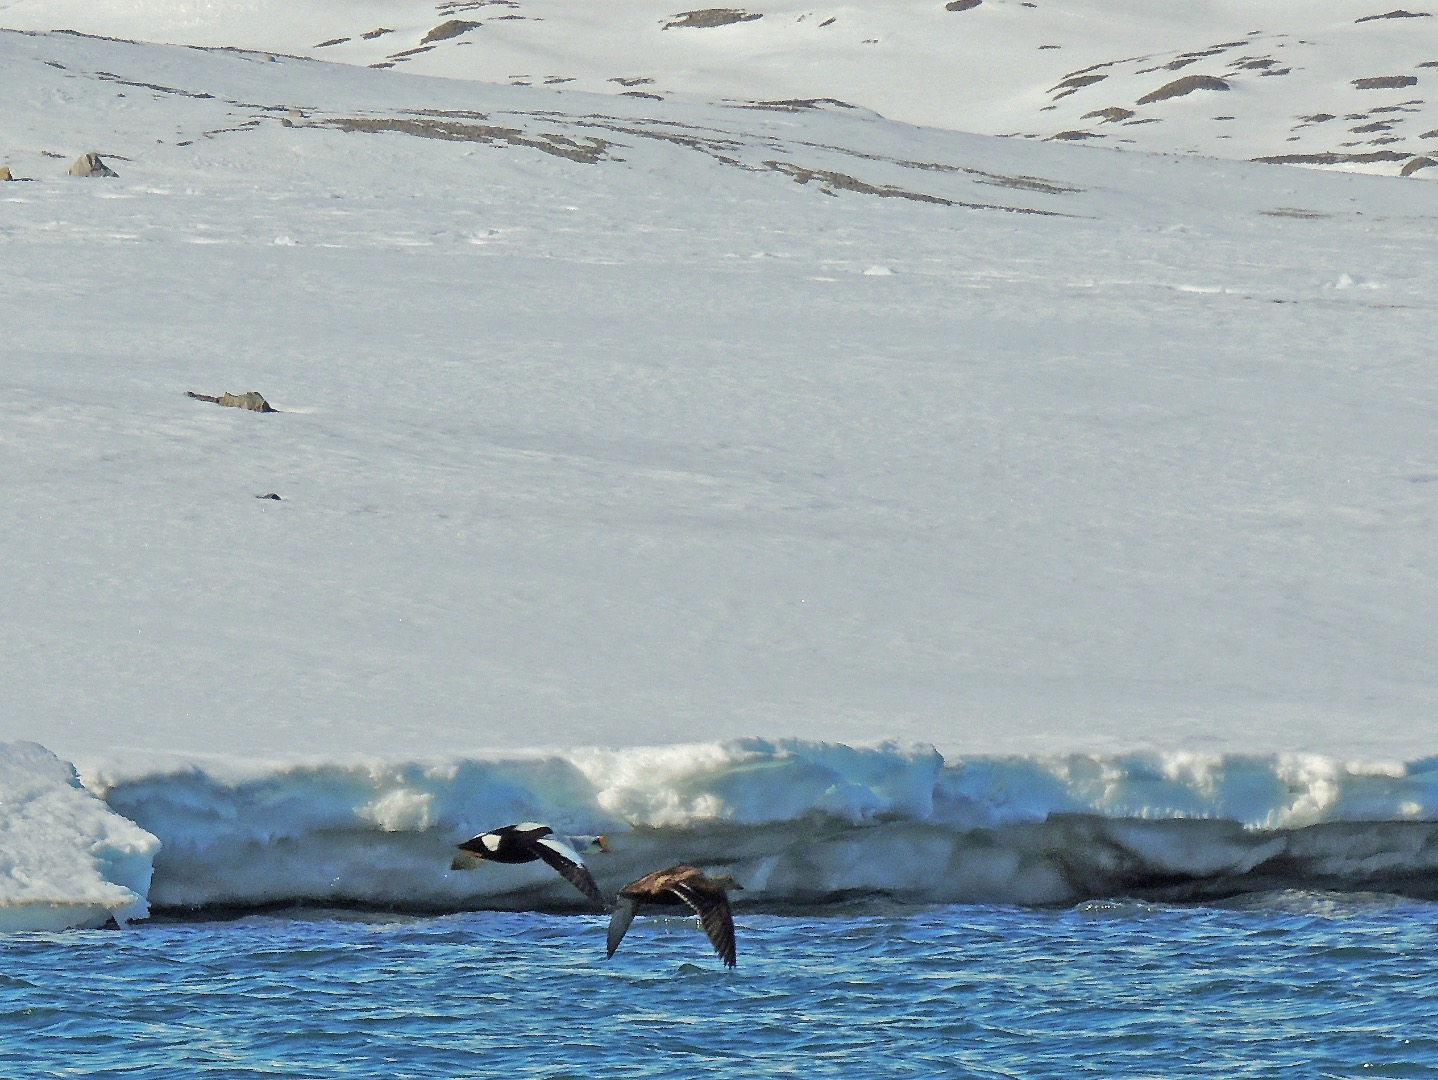 King Eider at Ymerbukta